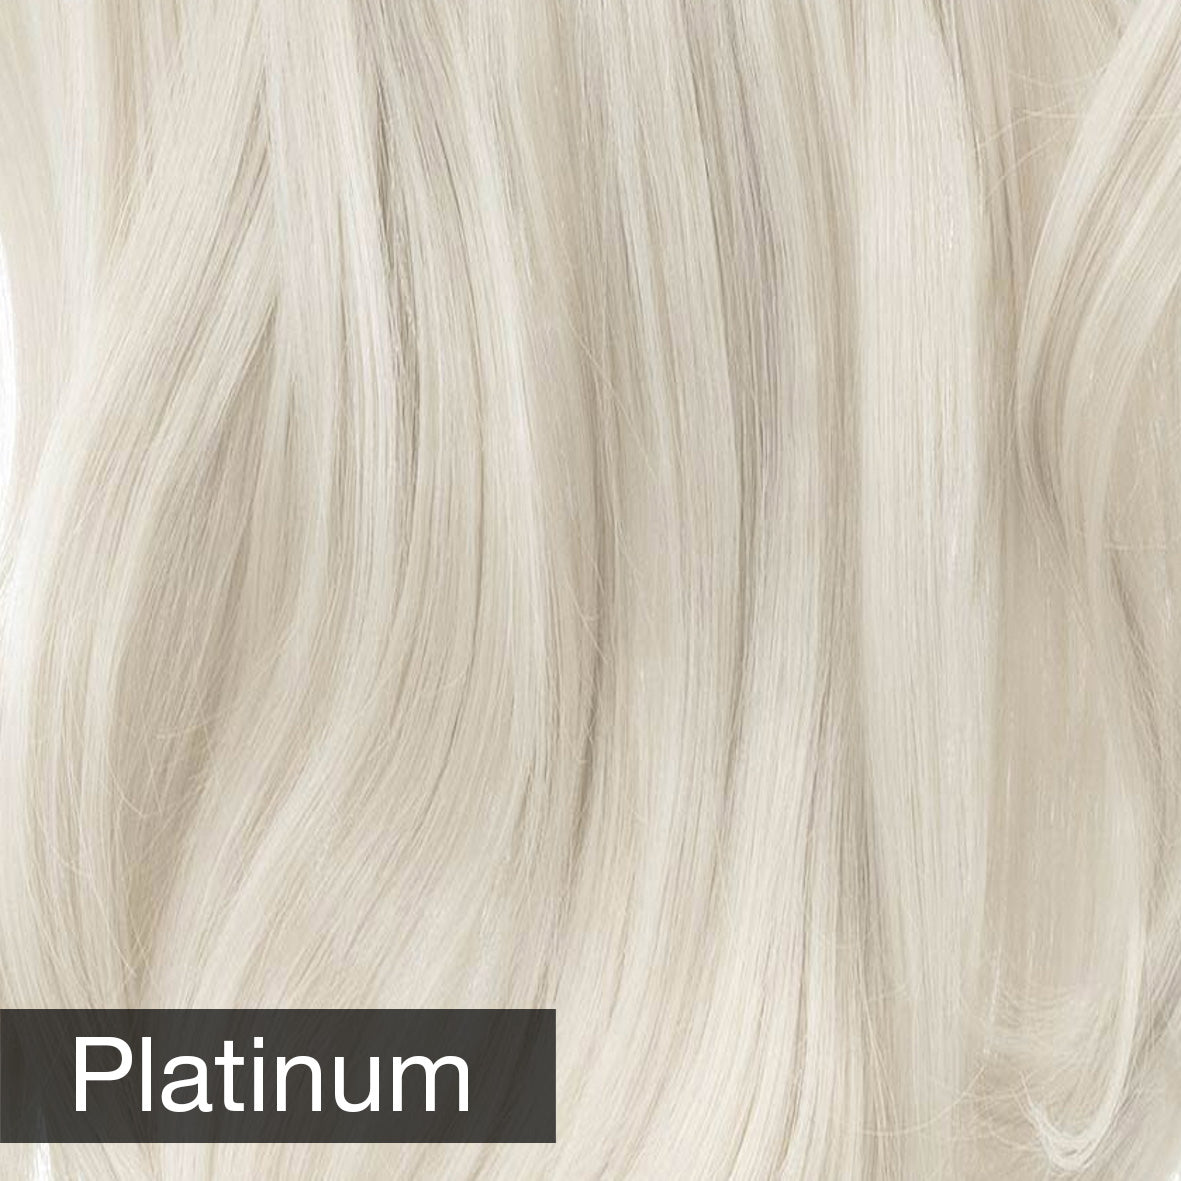 Platinum Blonde Hair Extension Colour (4490345971792)